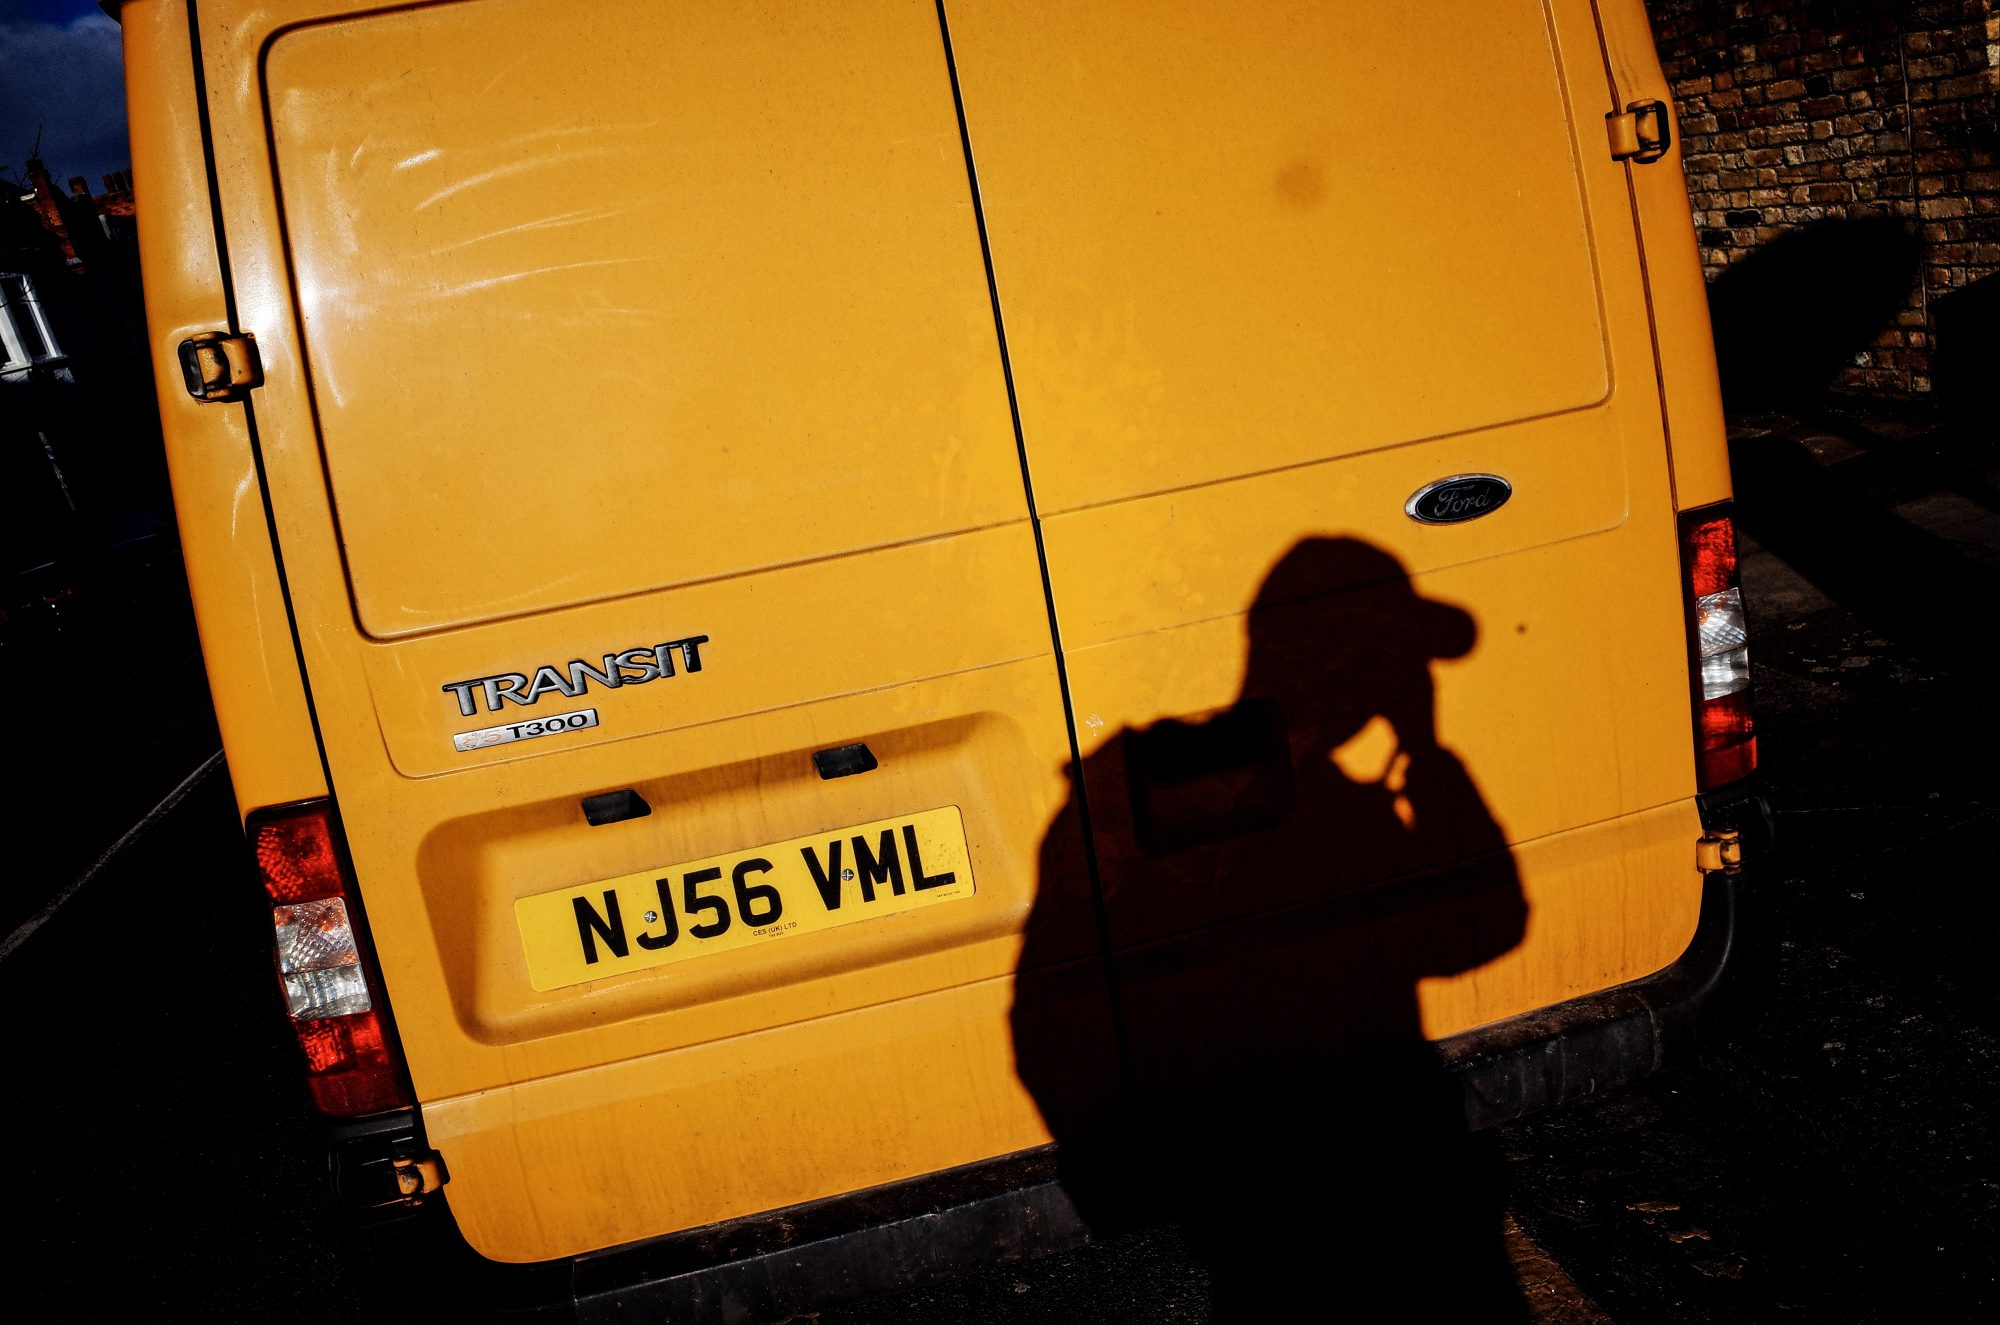 Selfie and yellow truck. London, 2018